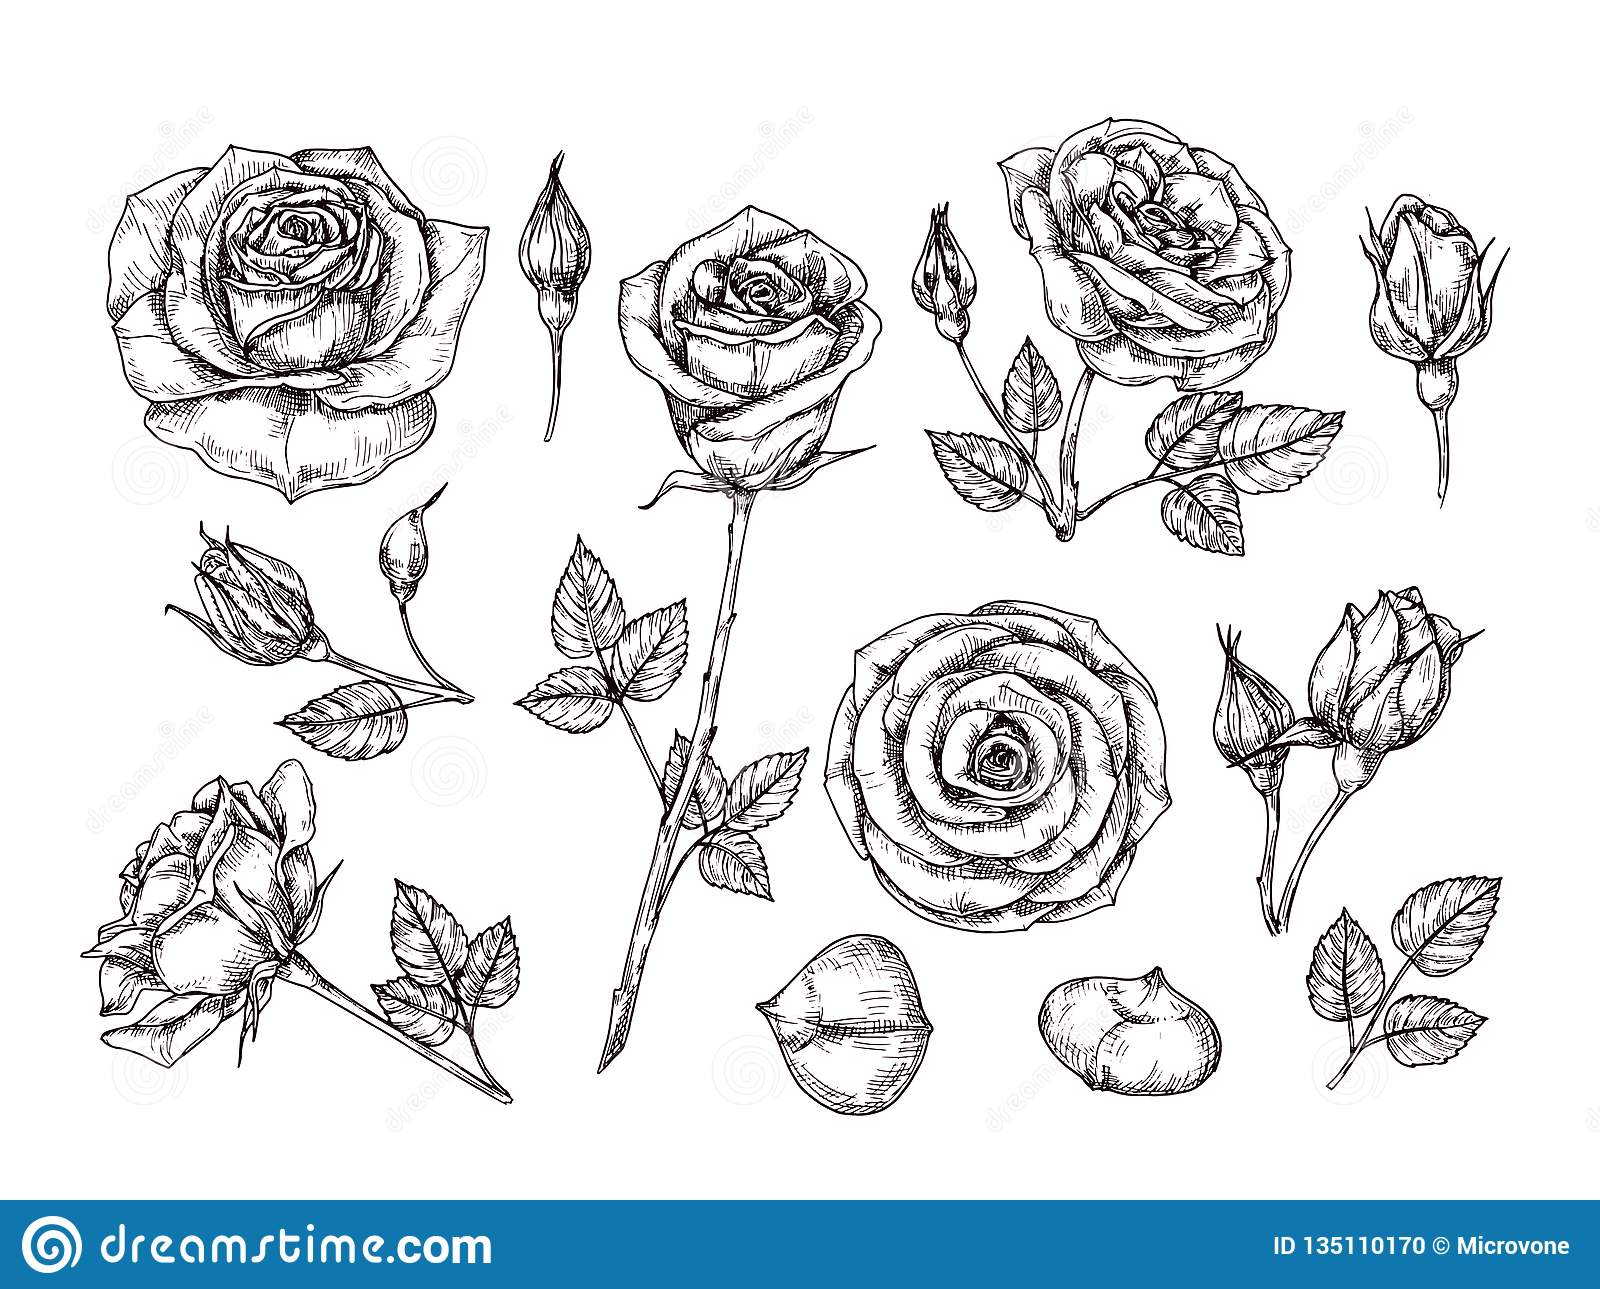 Hand Drawn Roses Sketch Rose Flowers With Thorns And Leaves Black